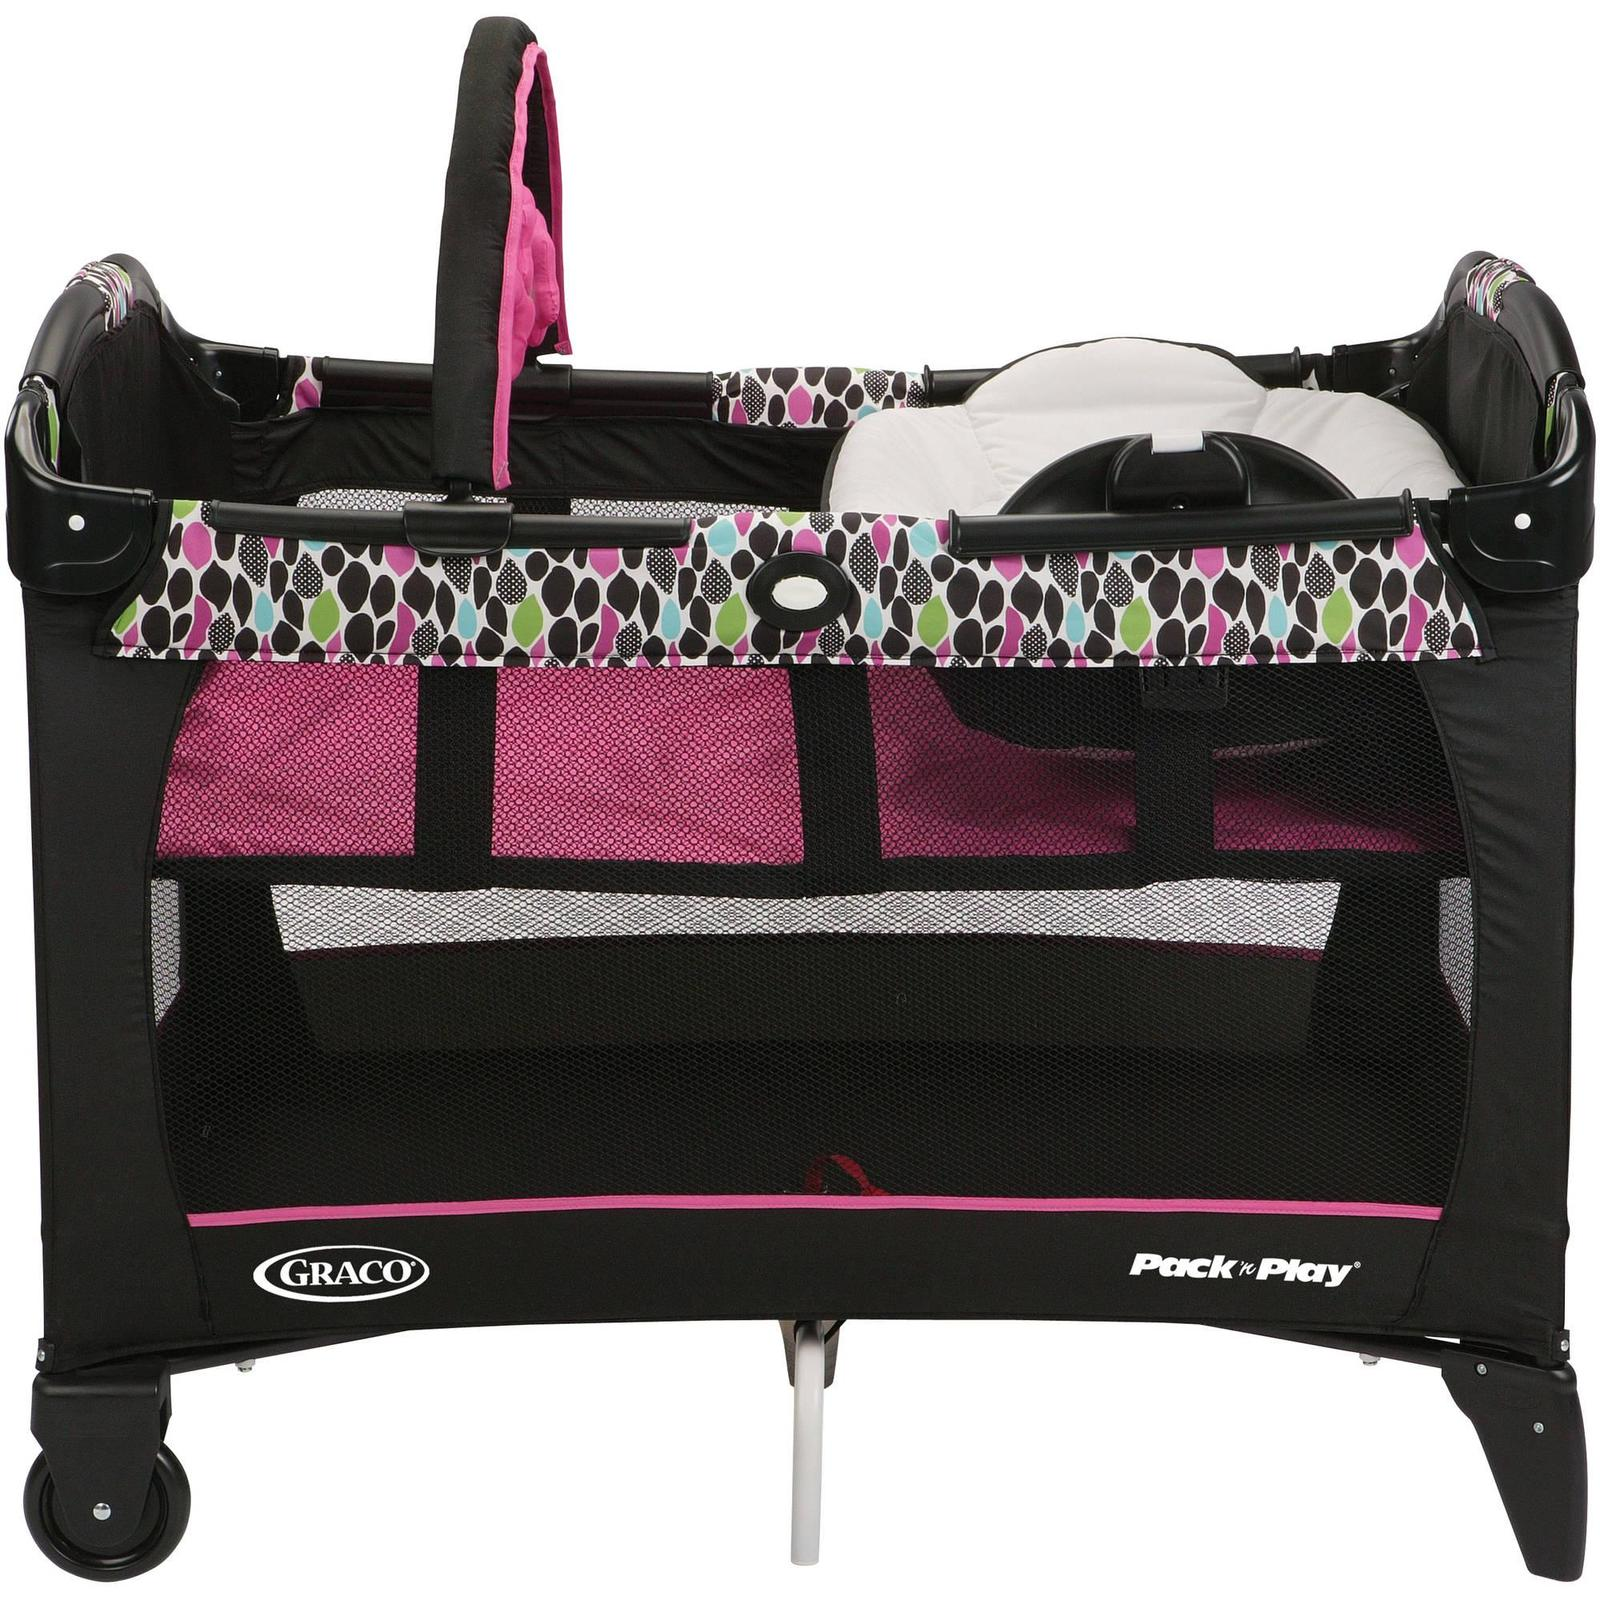 Graco baby portable play yard maci 3